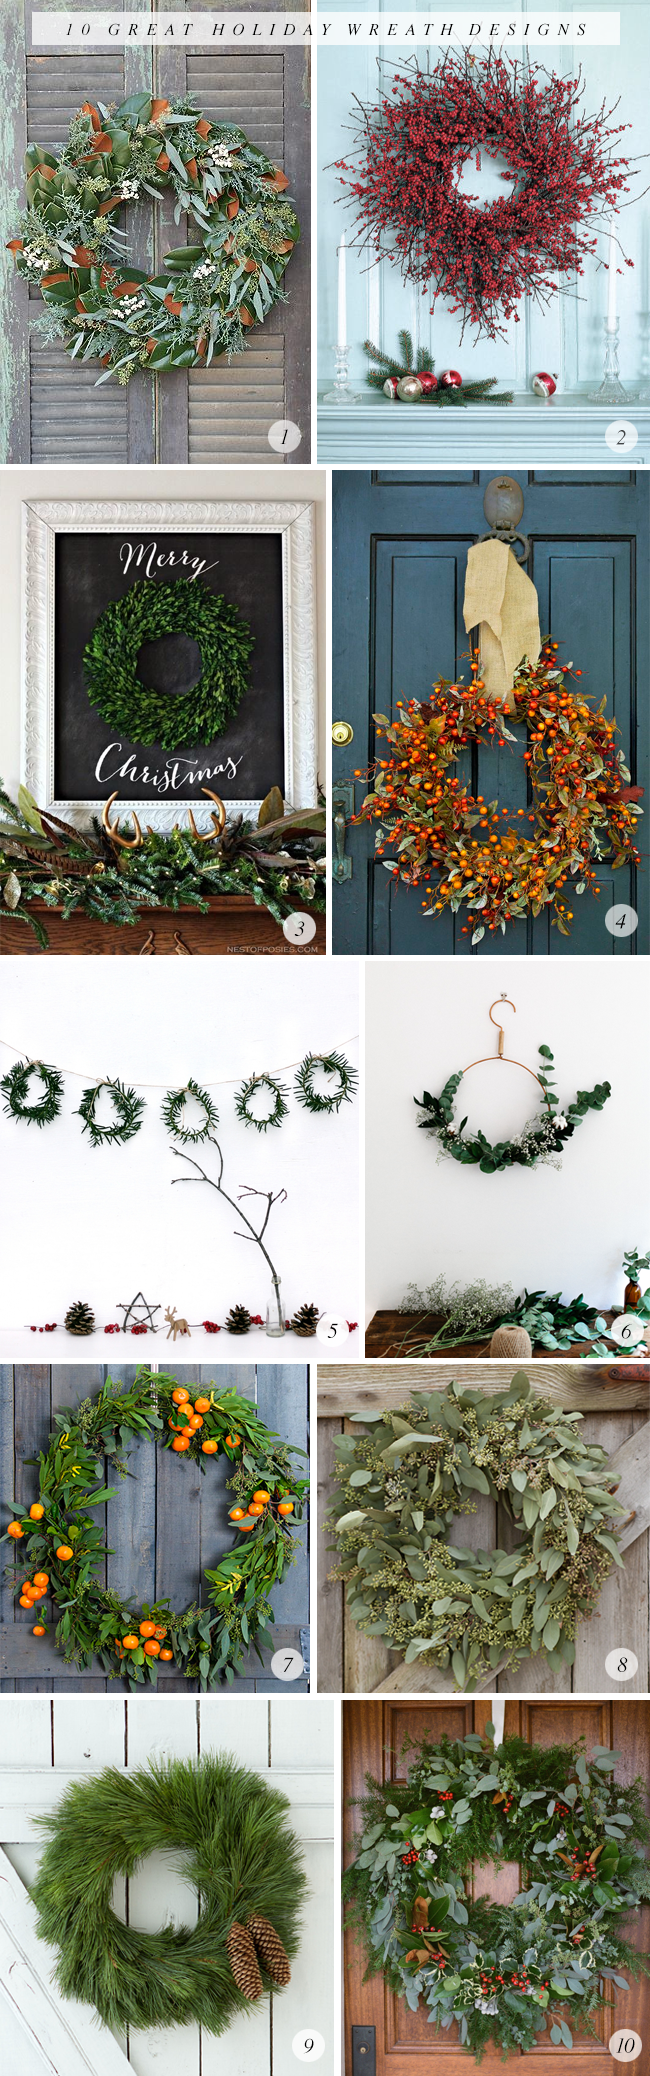 10 Great Holiday Wreath Designs via Bubby and Bean